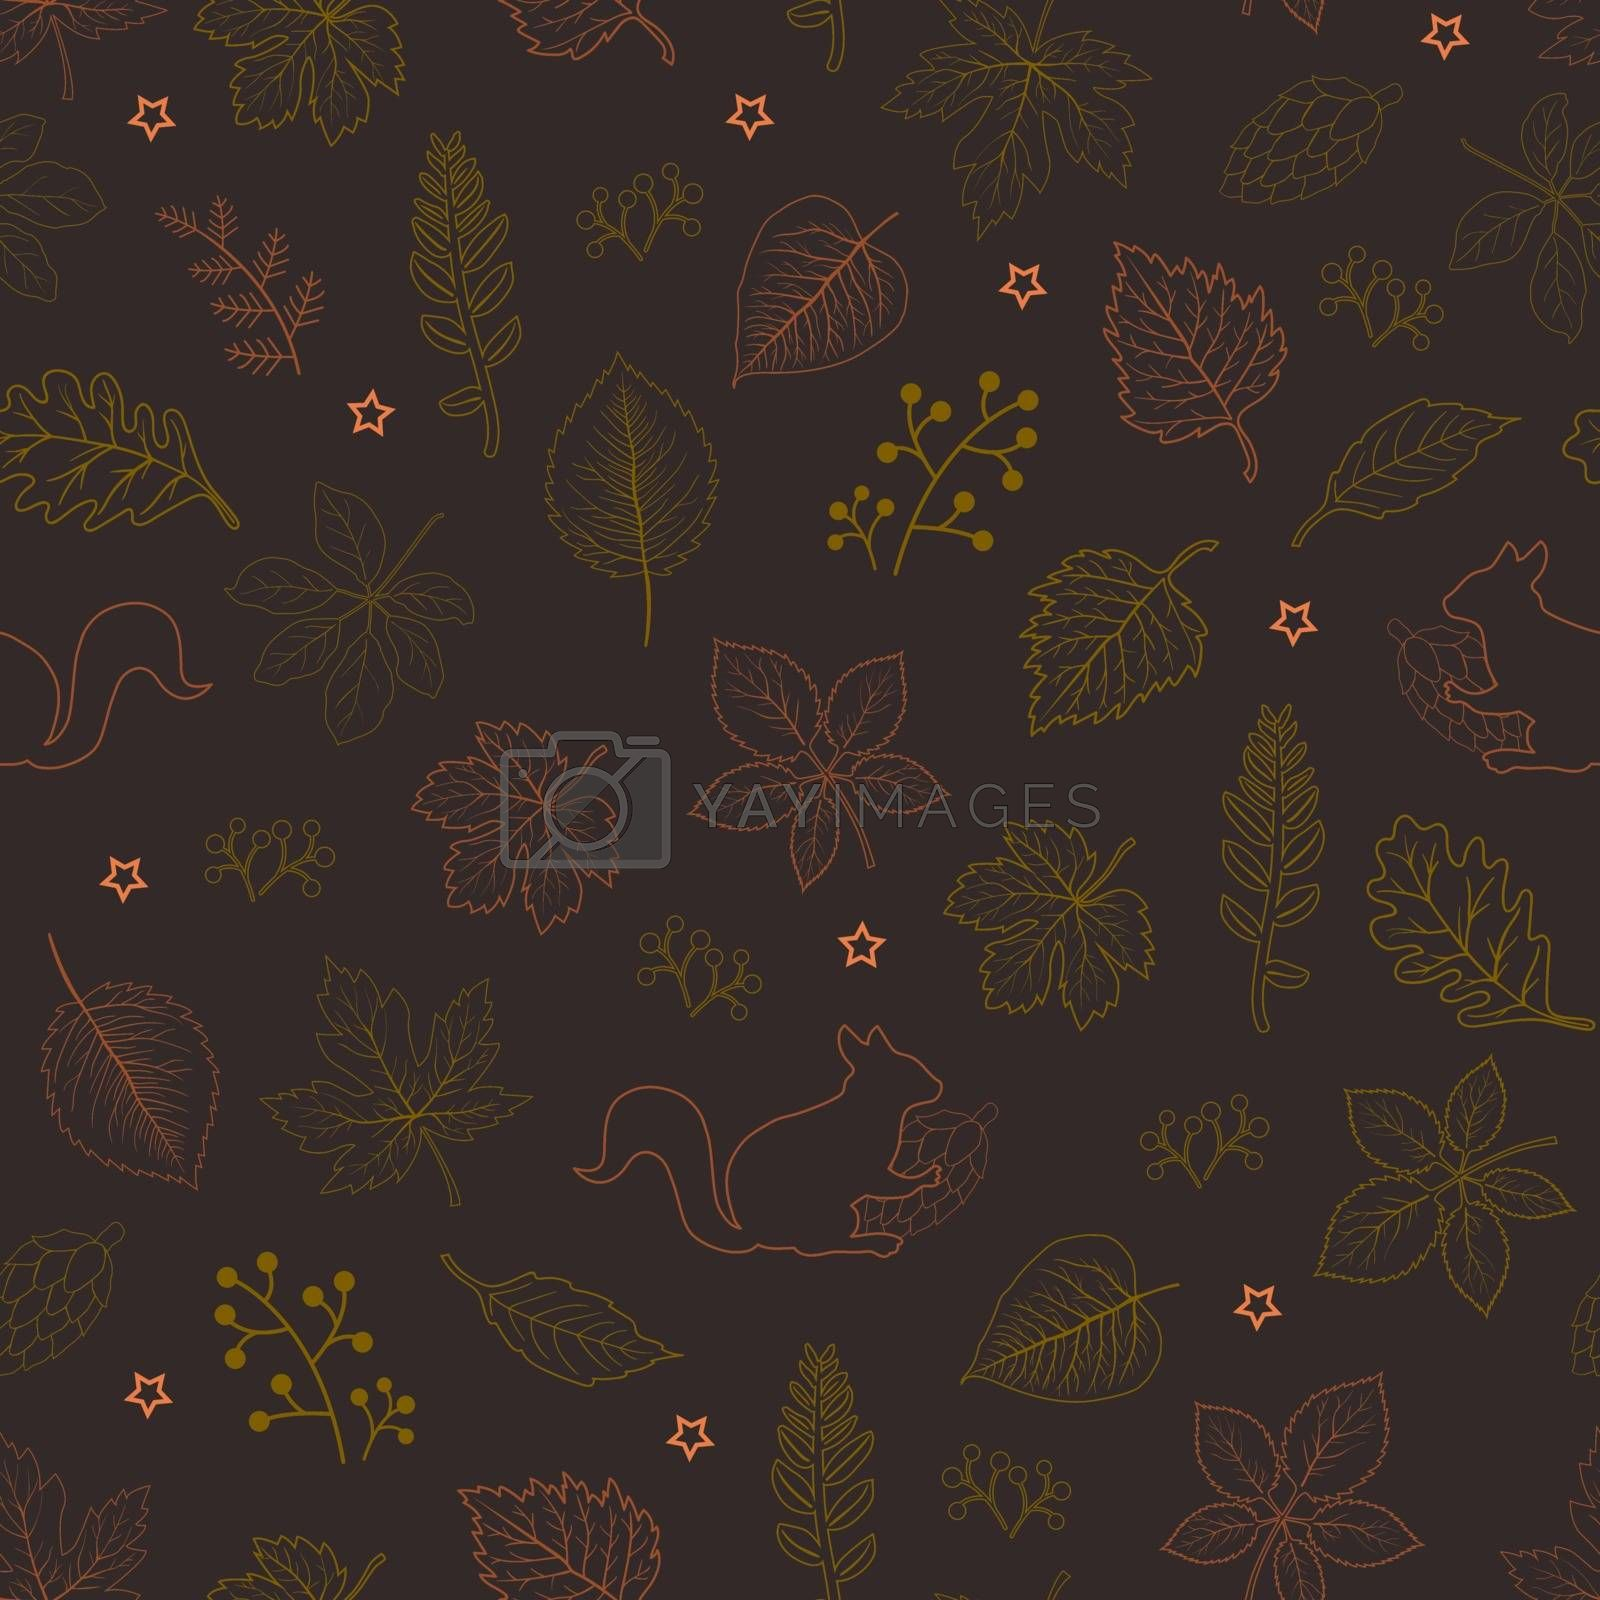 Hand drawn autumn leaves seamless pattern on dark brown background,for decorative,fabric,textile,print or wallpaper by PIMPAKA